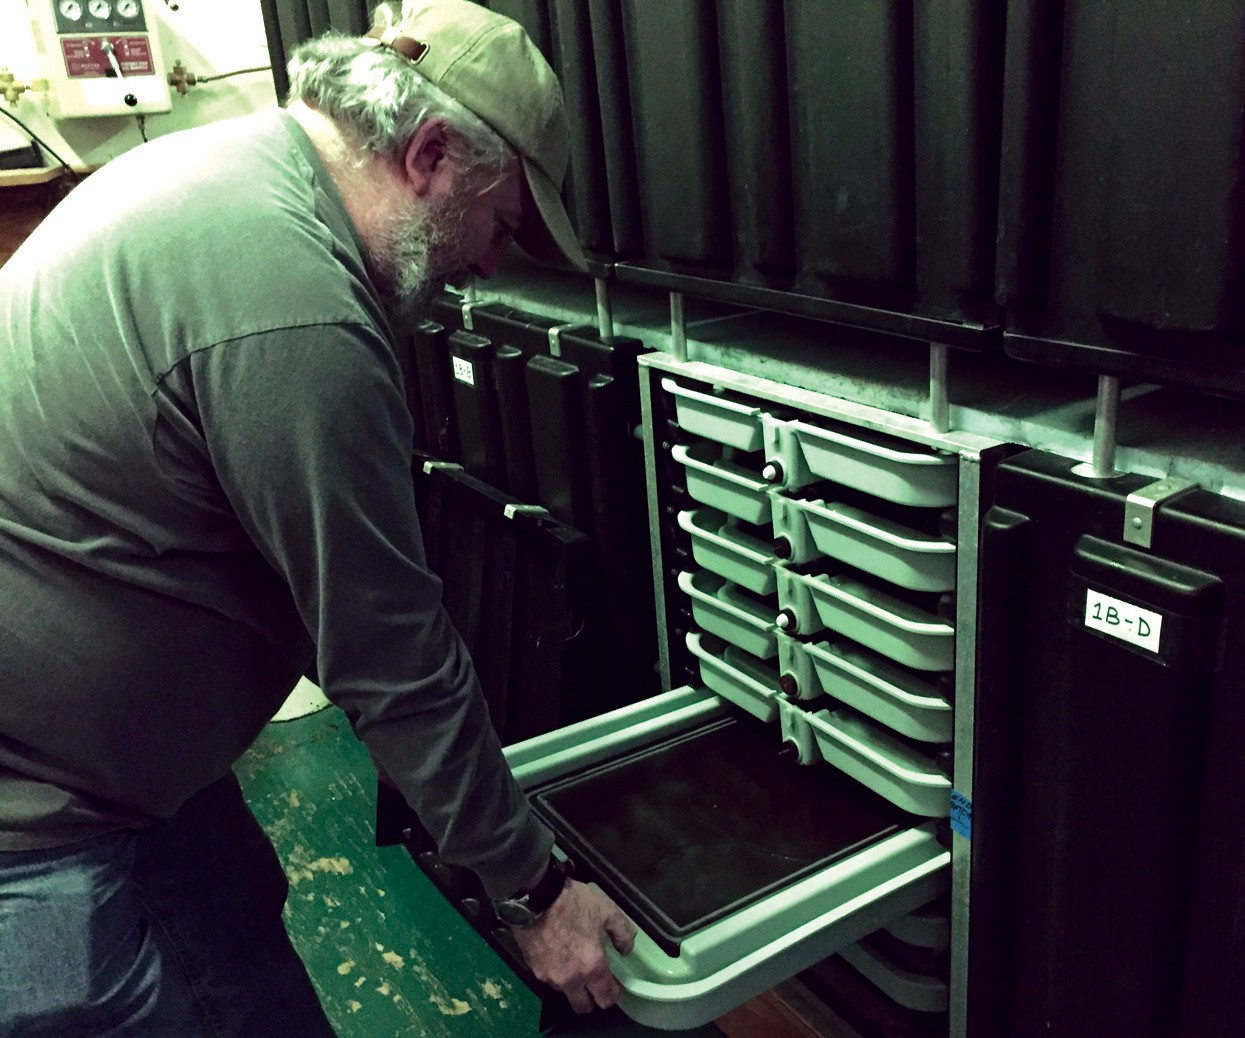 Saco Salmon Restoration Alliance President Rick LaRiviere pulls out a tray of salmon fry in an incubator at the organization's Biddeford hatchery.